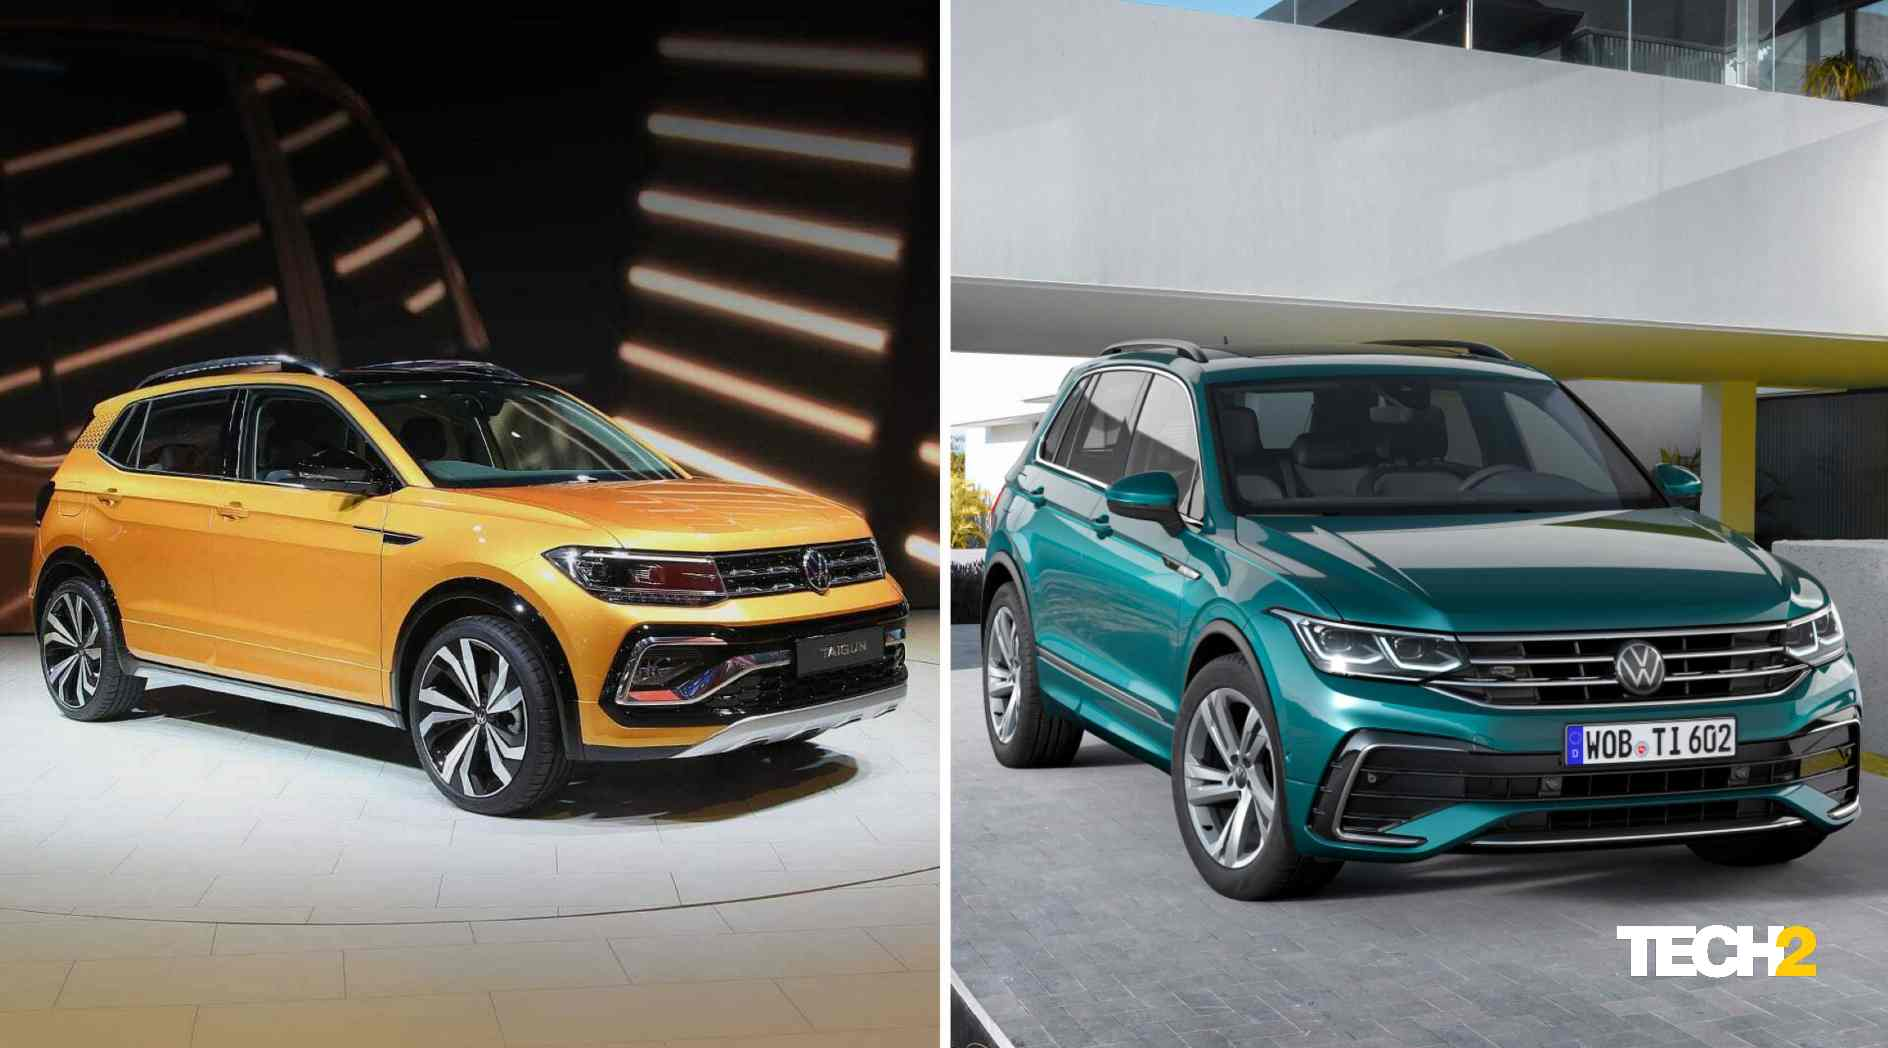 Volkswagen Taigun launch timeframe confirmed, Tiguan facelift to launch by mid-2021- Technology News, FP